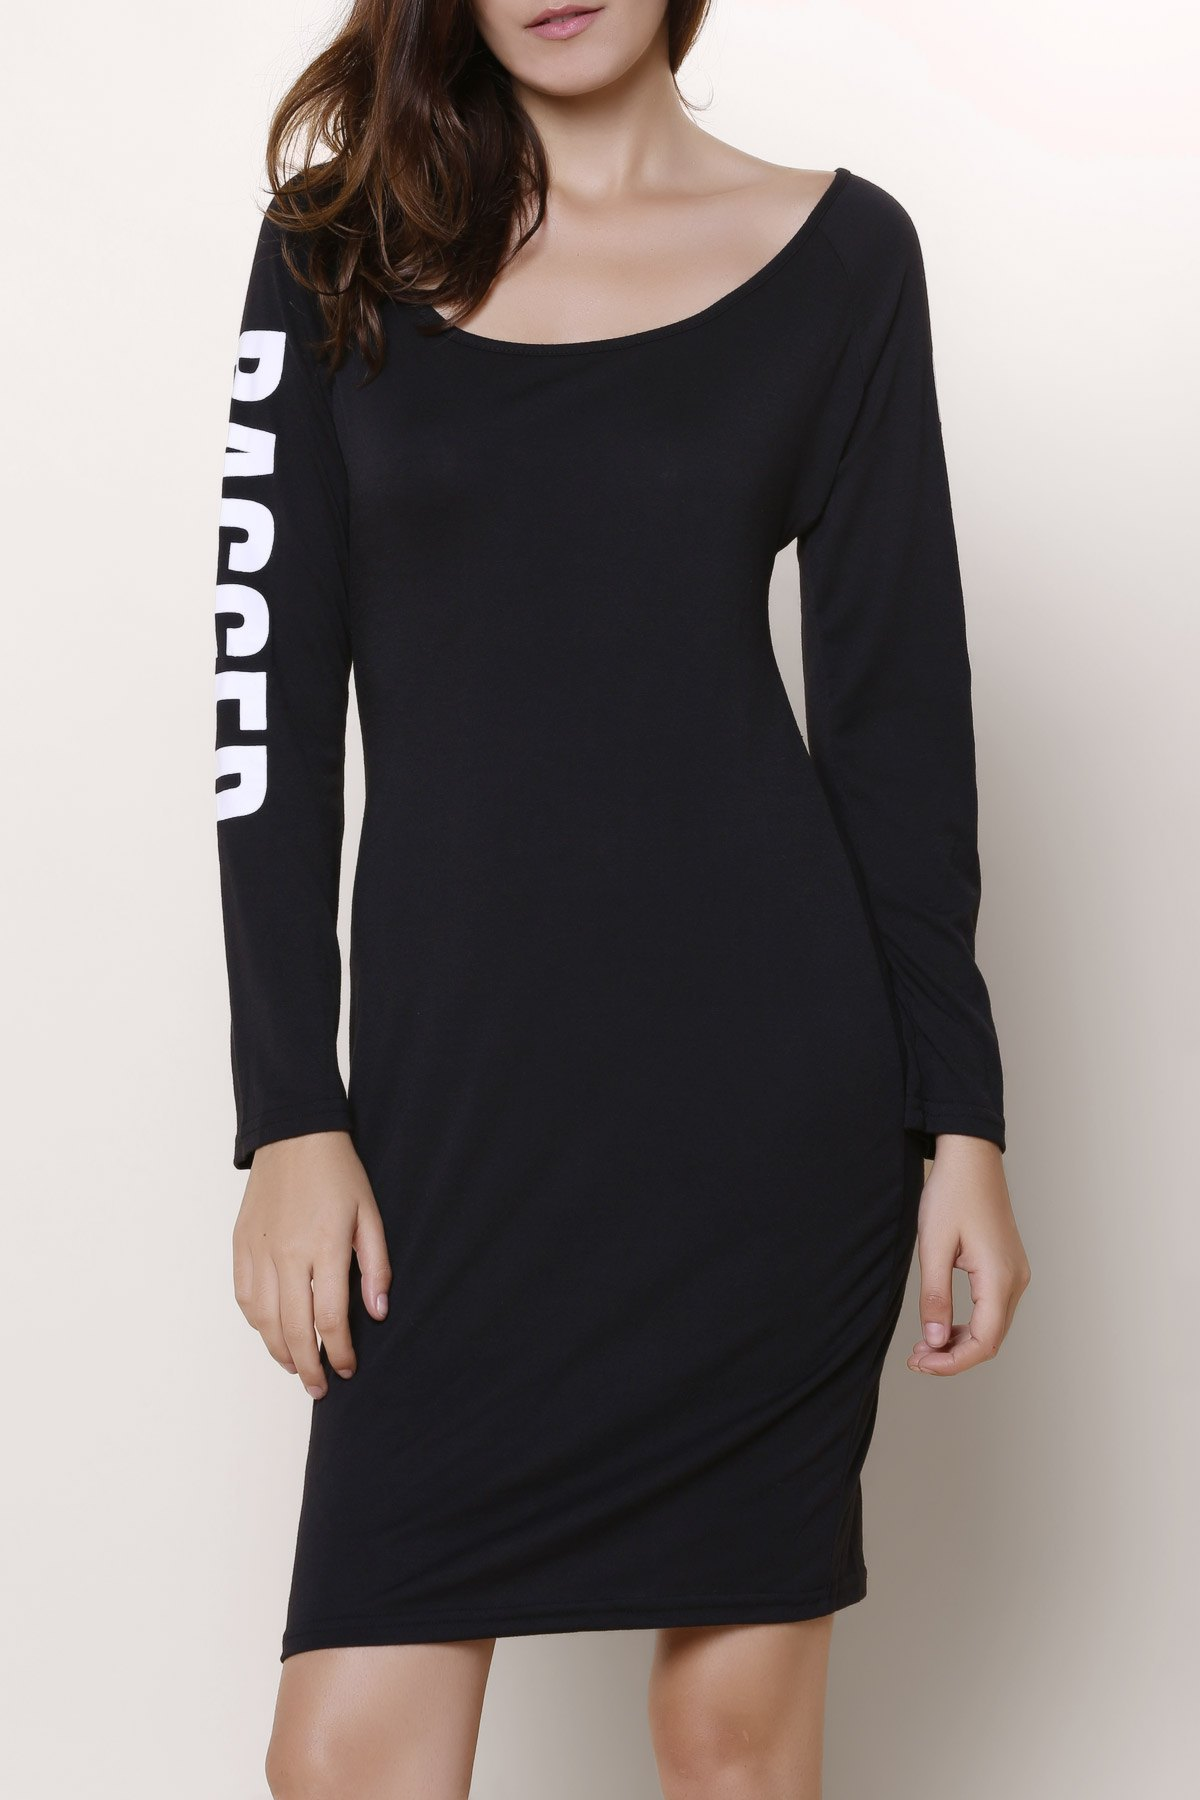 Chic  Low-Cut Scoop Neck Letter Printed Back Ripped Hollow Out Bodycon Dress For Women - BLACK L